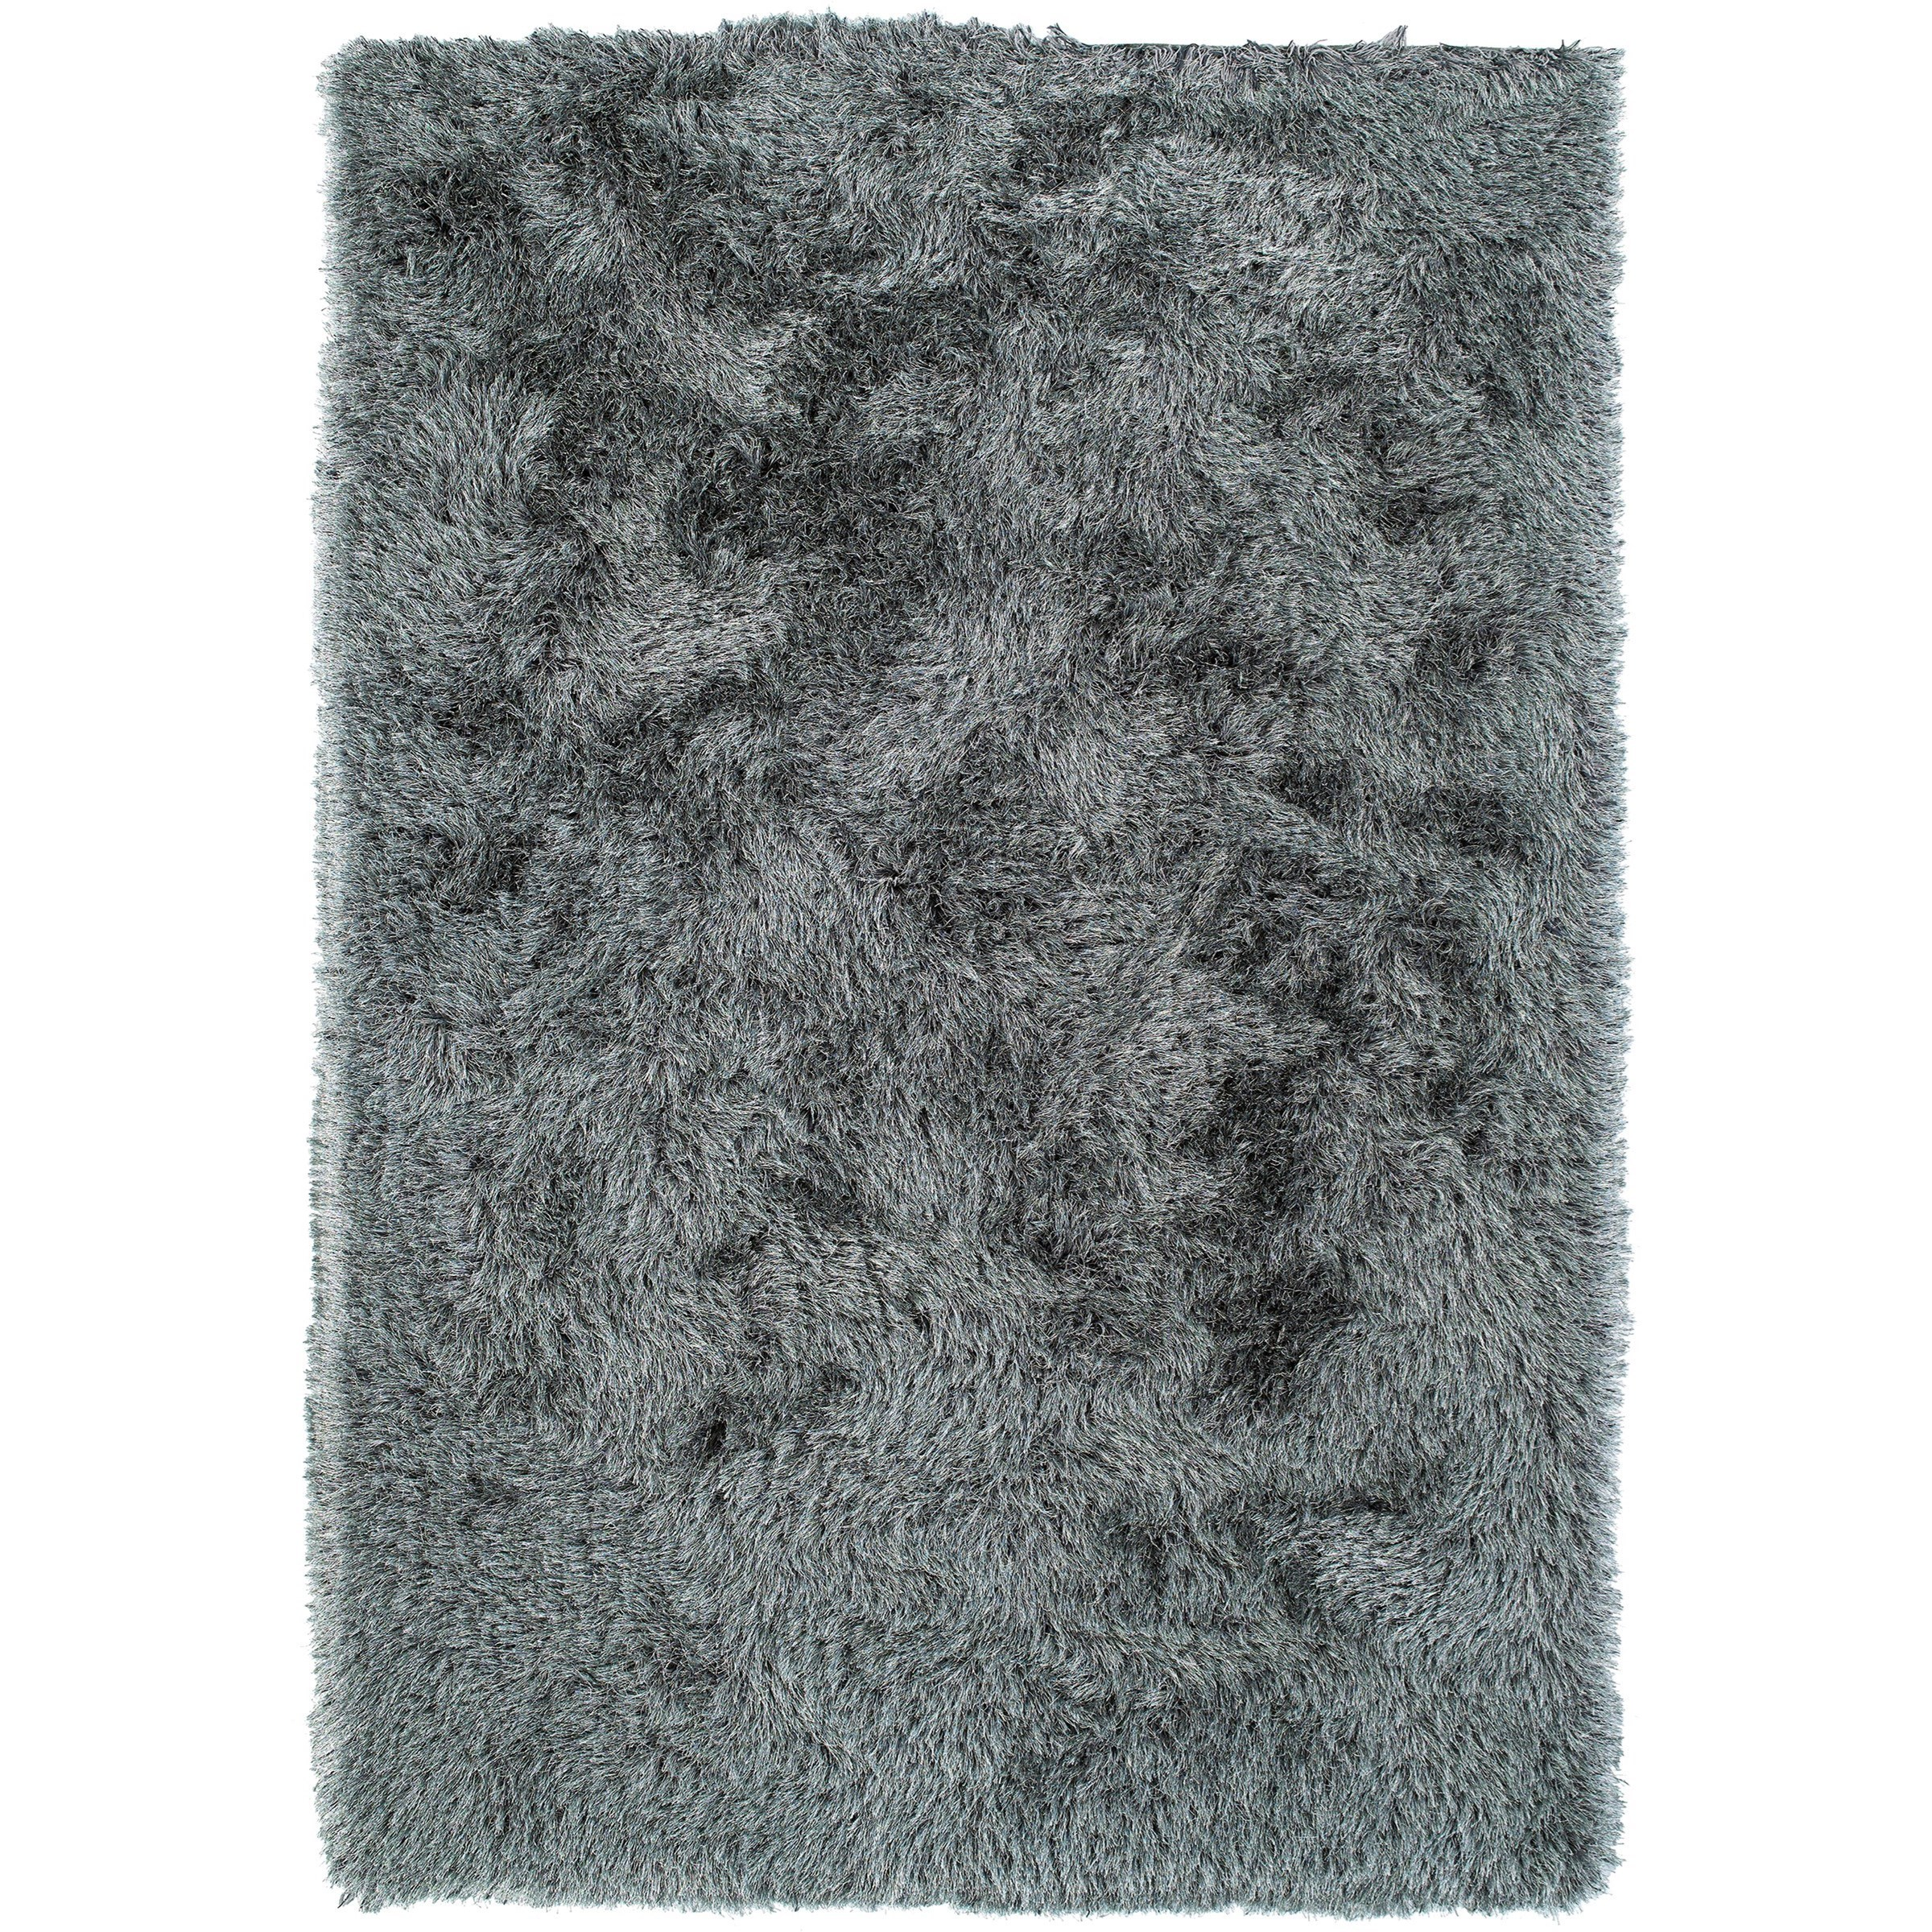 Impact Pewter 8'X10' Area Rug at Walker's Furniture